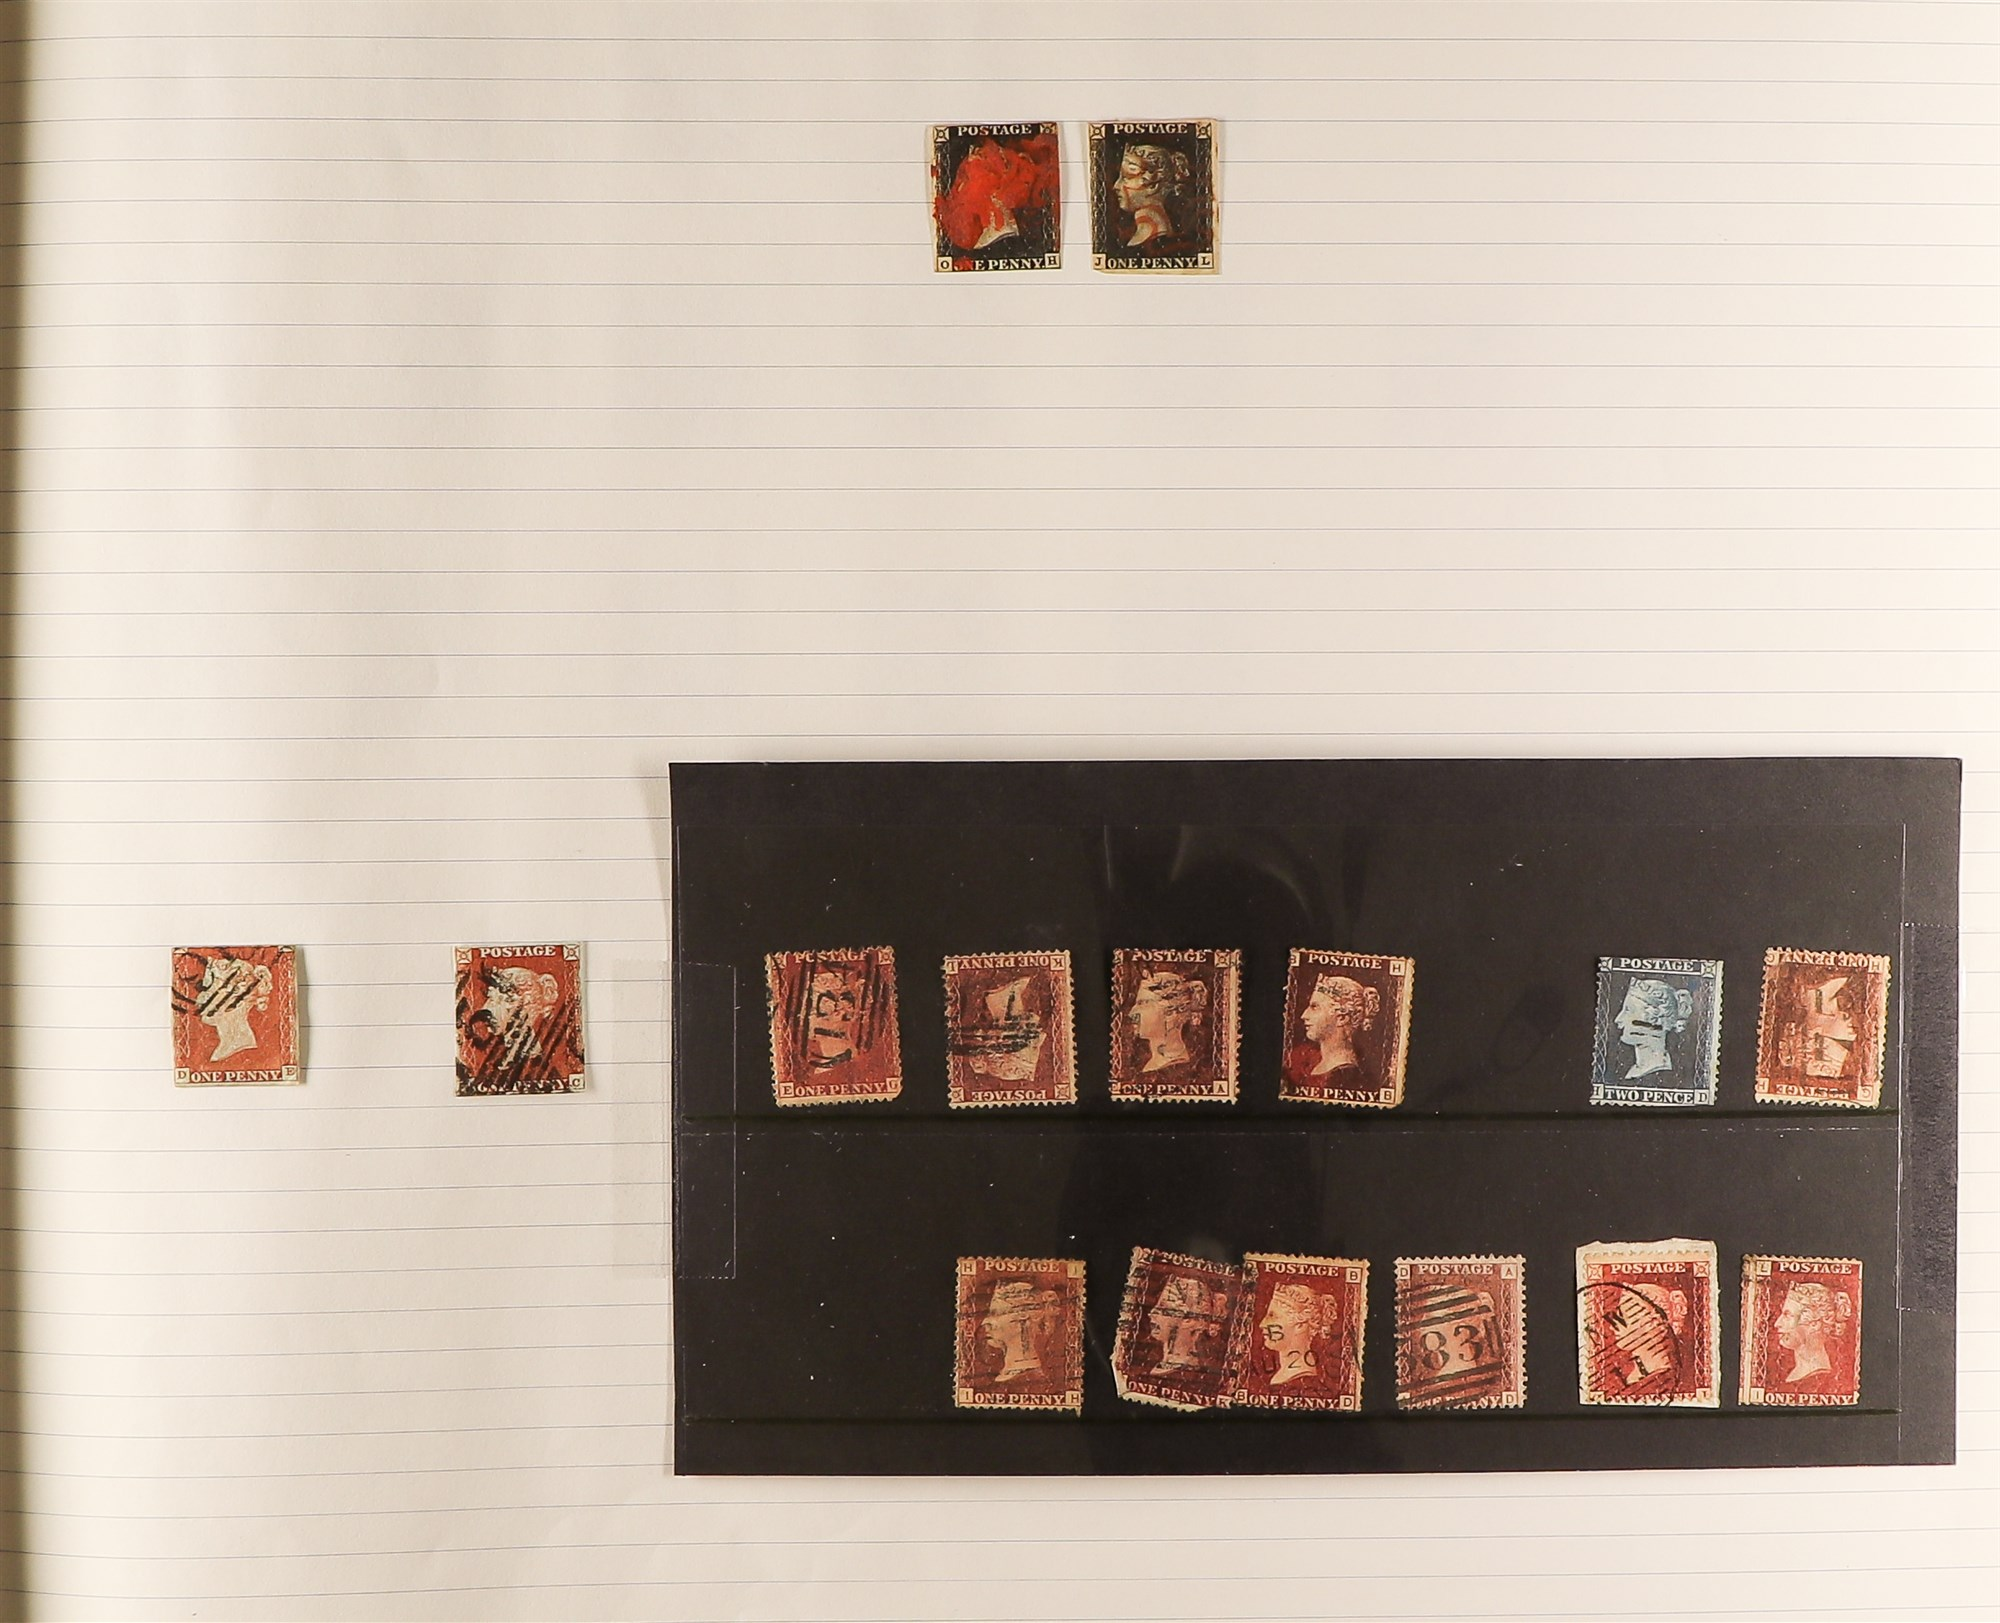 GREAT BRITAIN 1840-1999 COLLECTION in a ledger album, with 1840 1d blacks (2, fair), 1d red plates